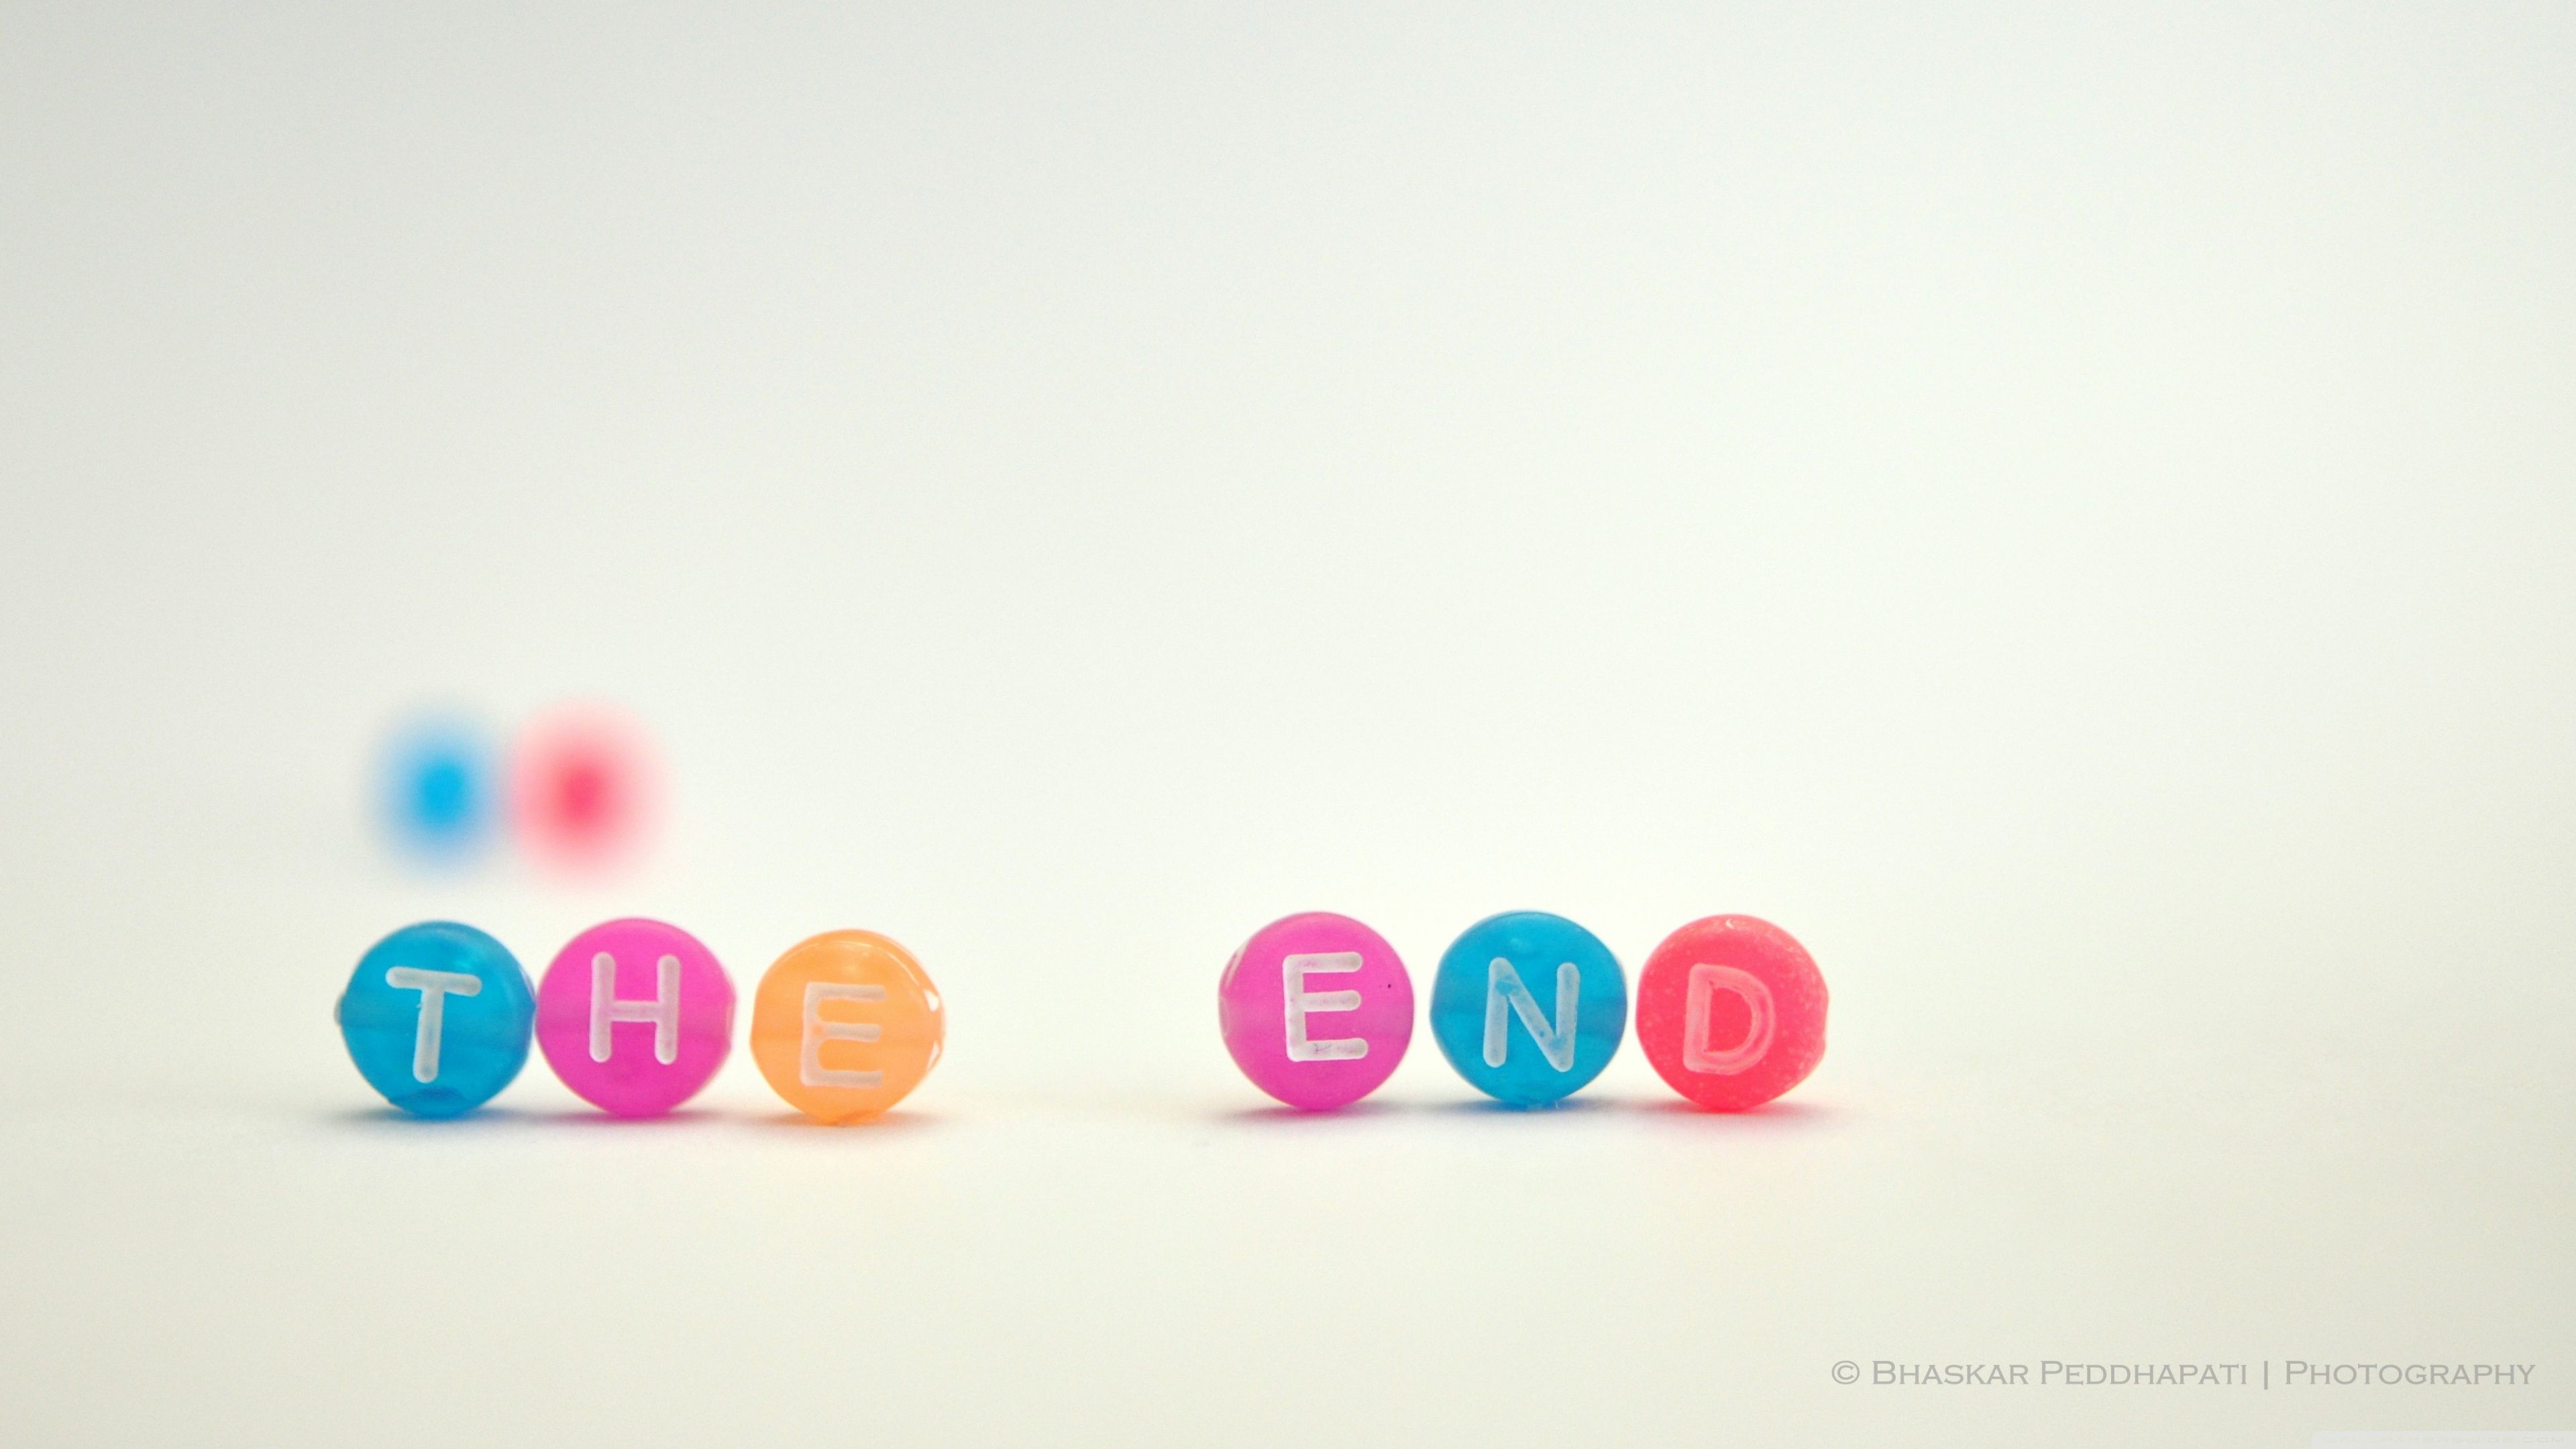 The End 4k Ultra Wallpapers Top Free The End 4k Ultra